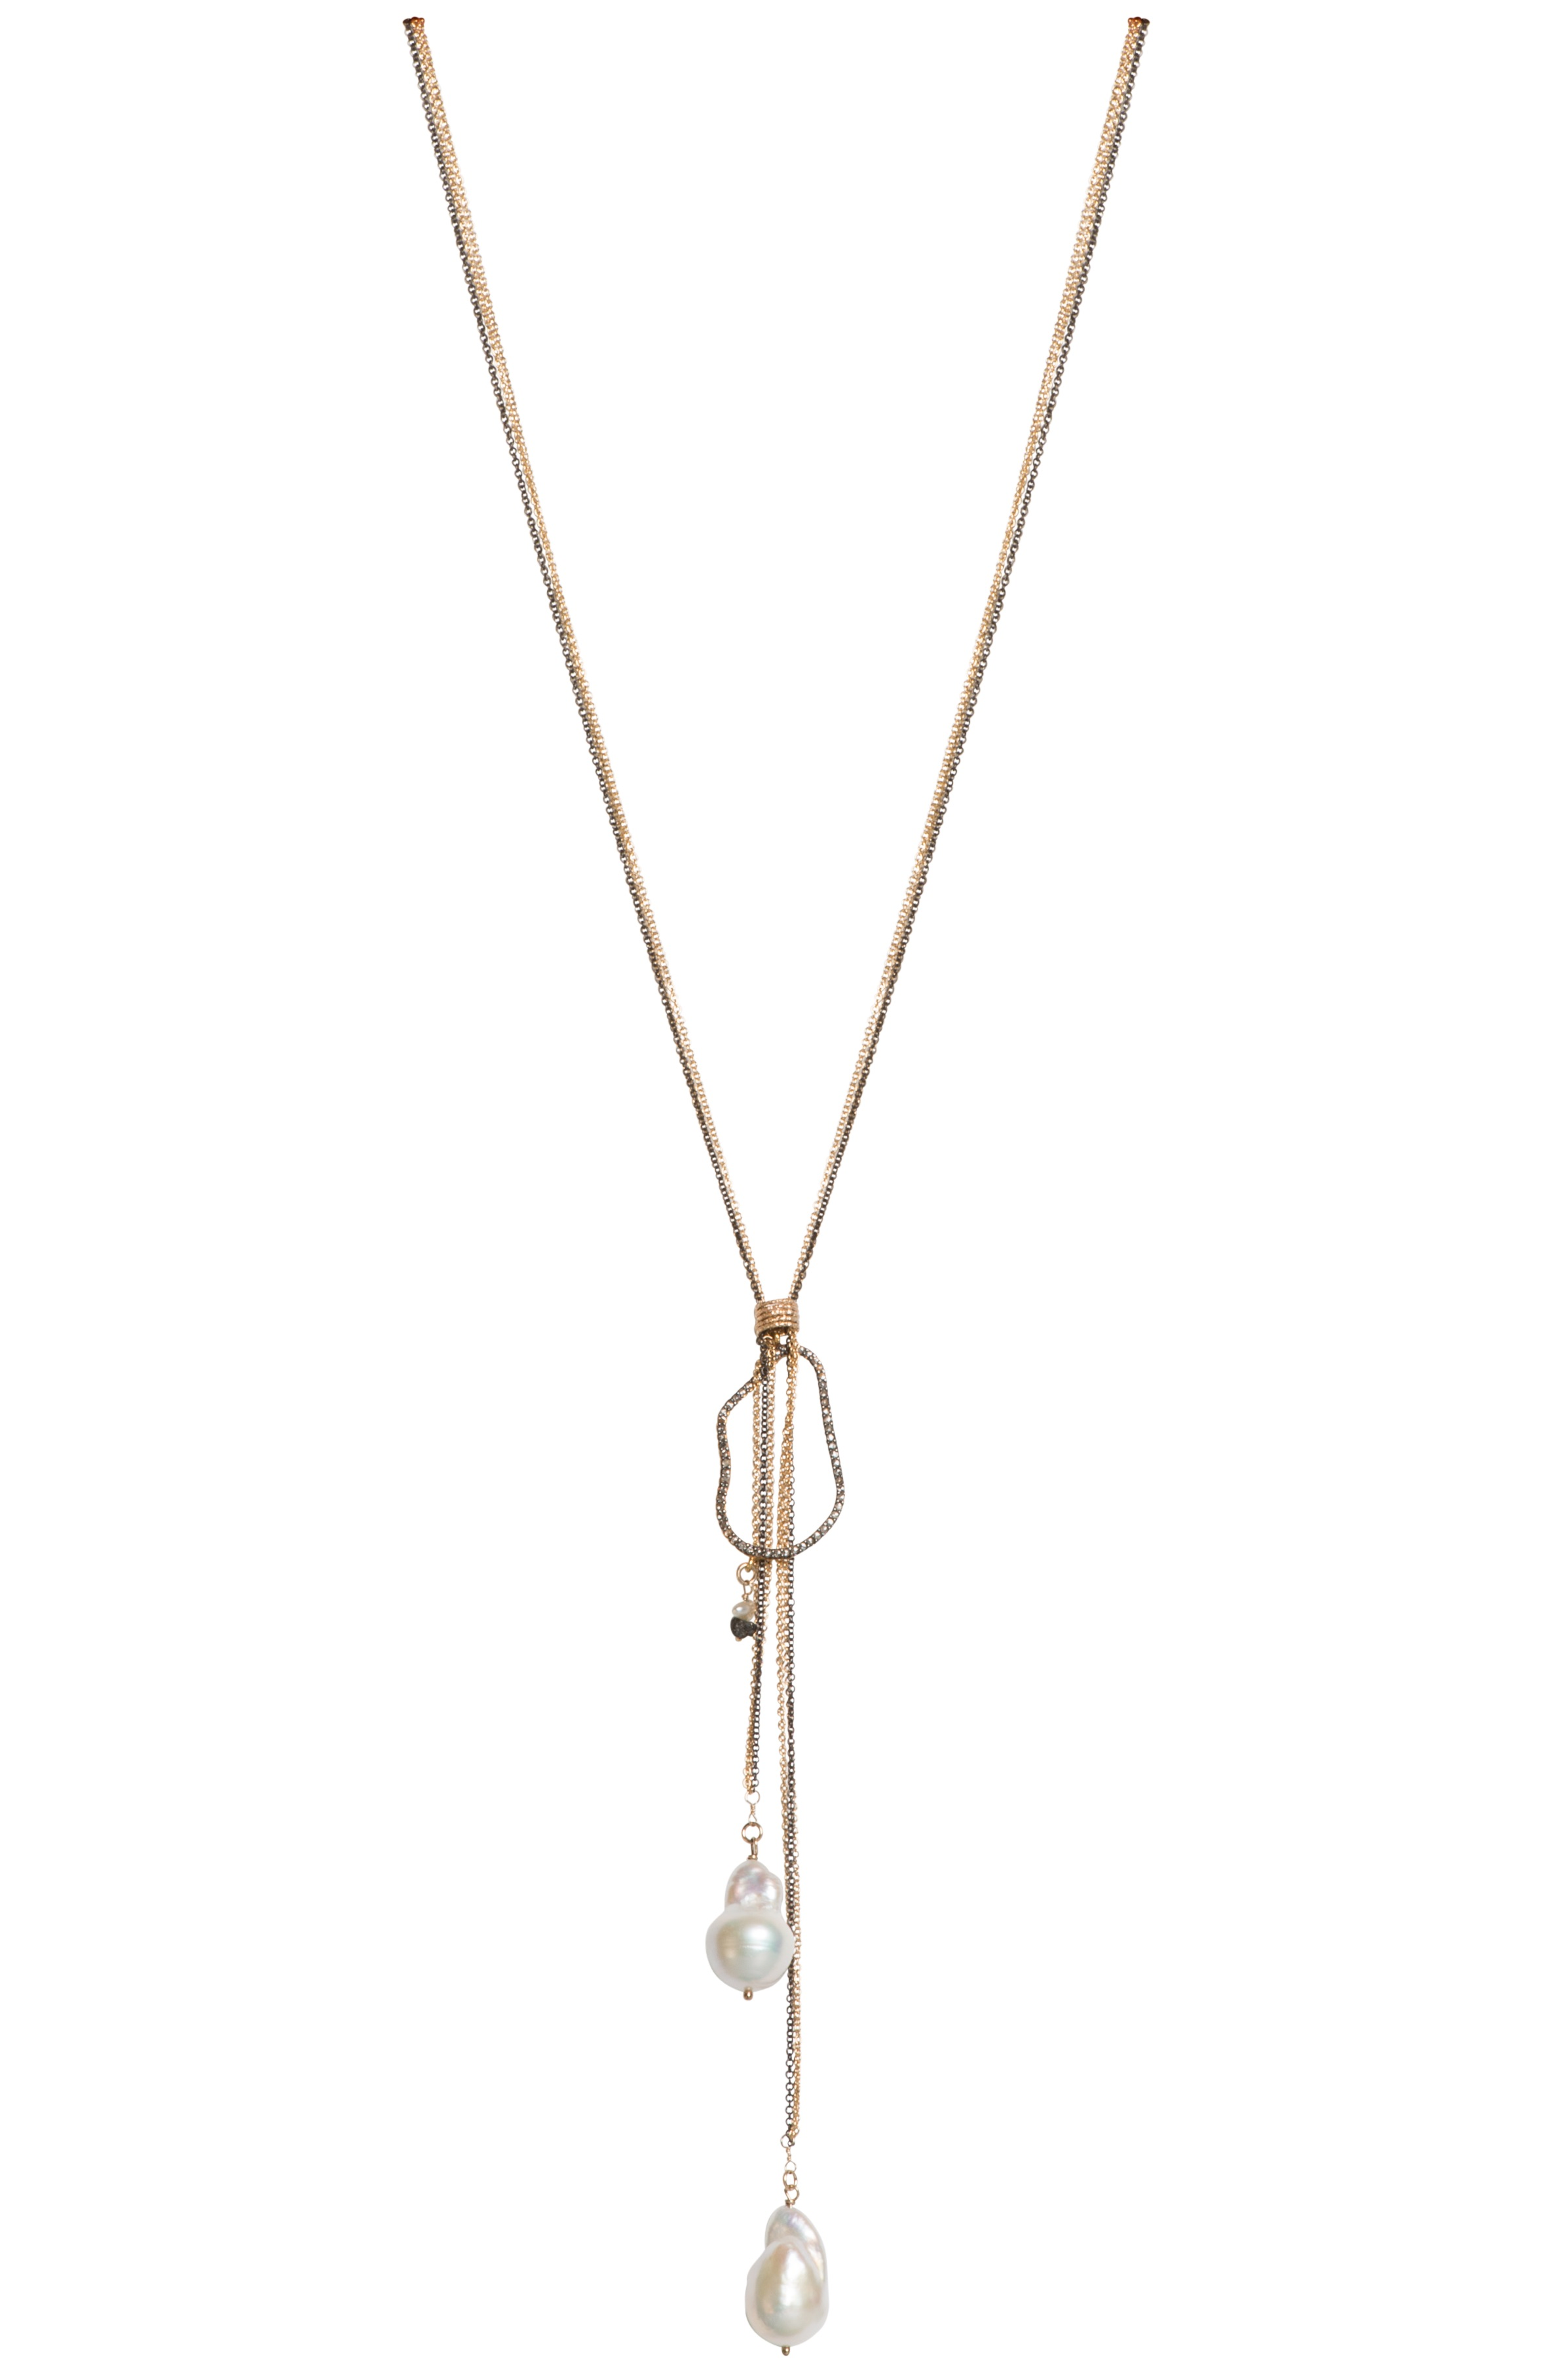 Tracy Arrington champagne diamond and pearl necklace | JCK On Your Market